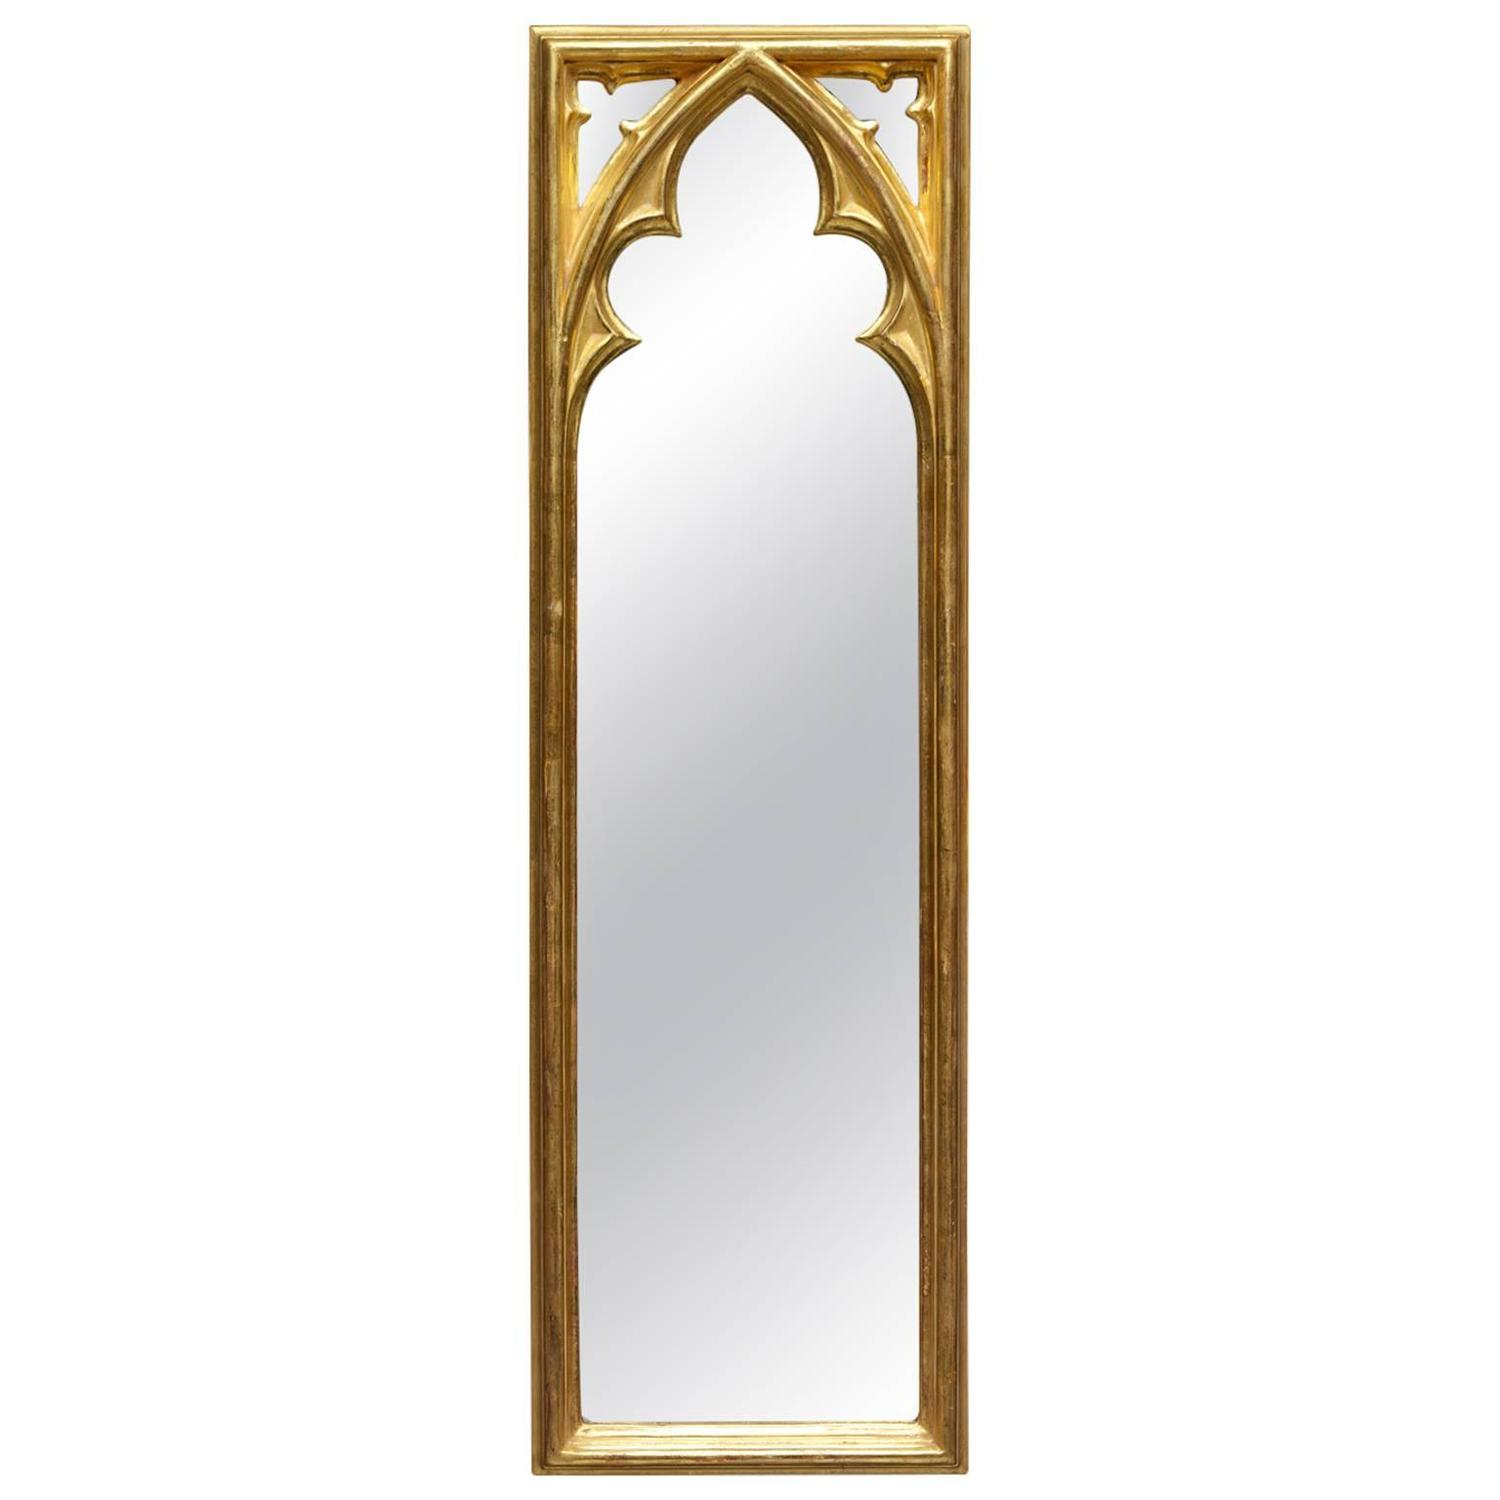 Arched gilt mirror at 1stdibs - Strawberry